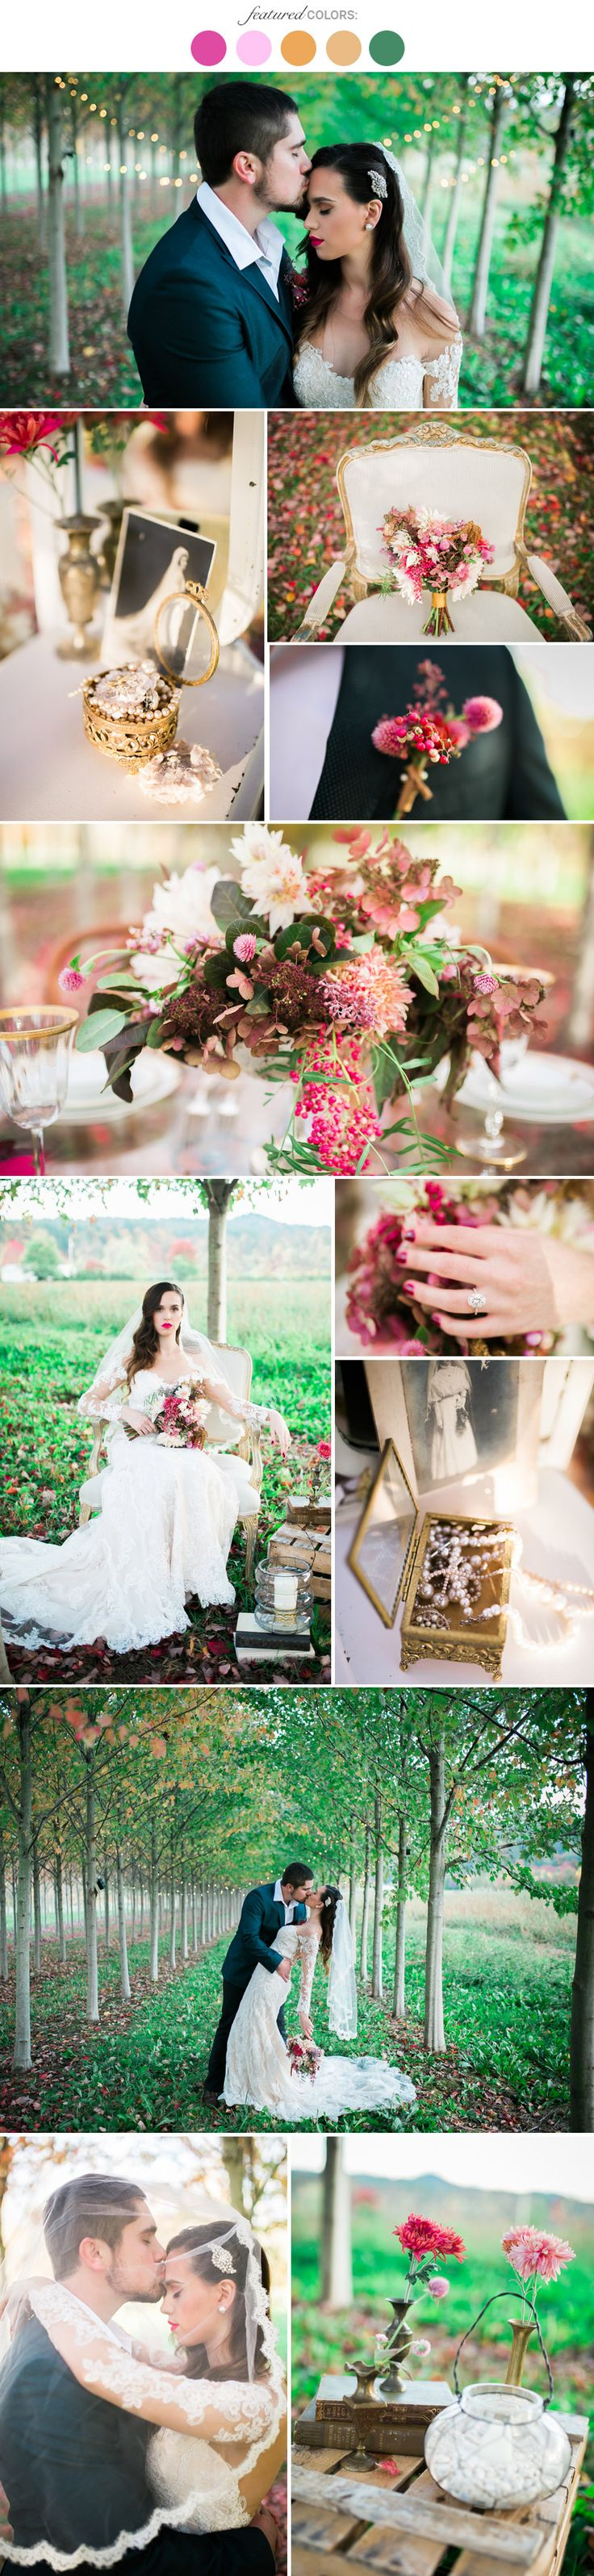 81 best wedding color combinations images on pinterest for Best wedding color combinations